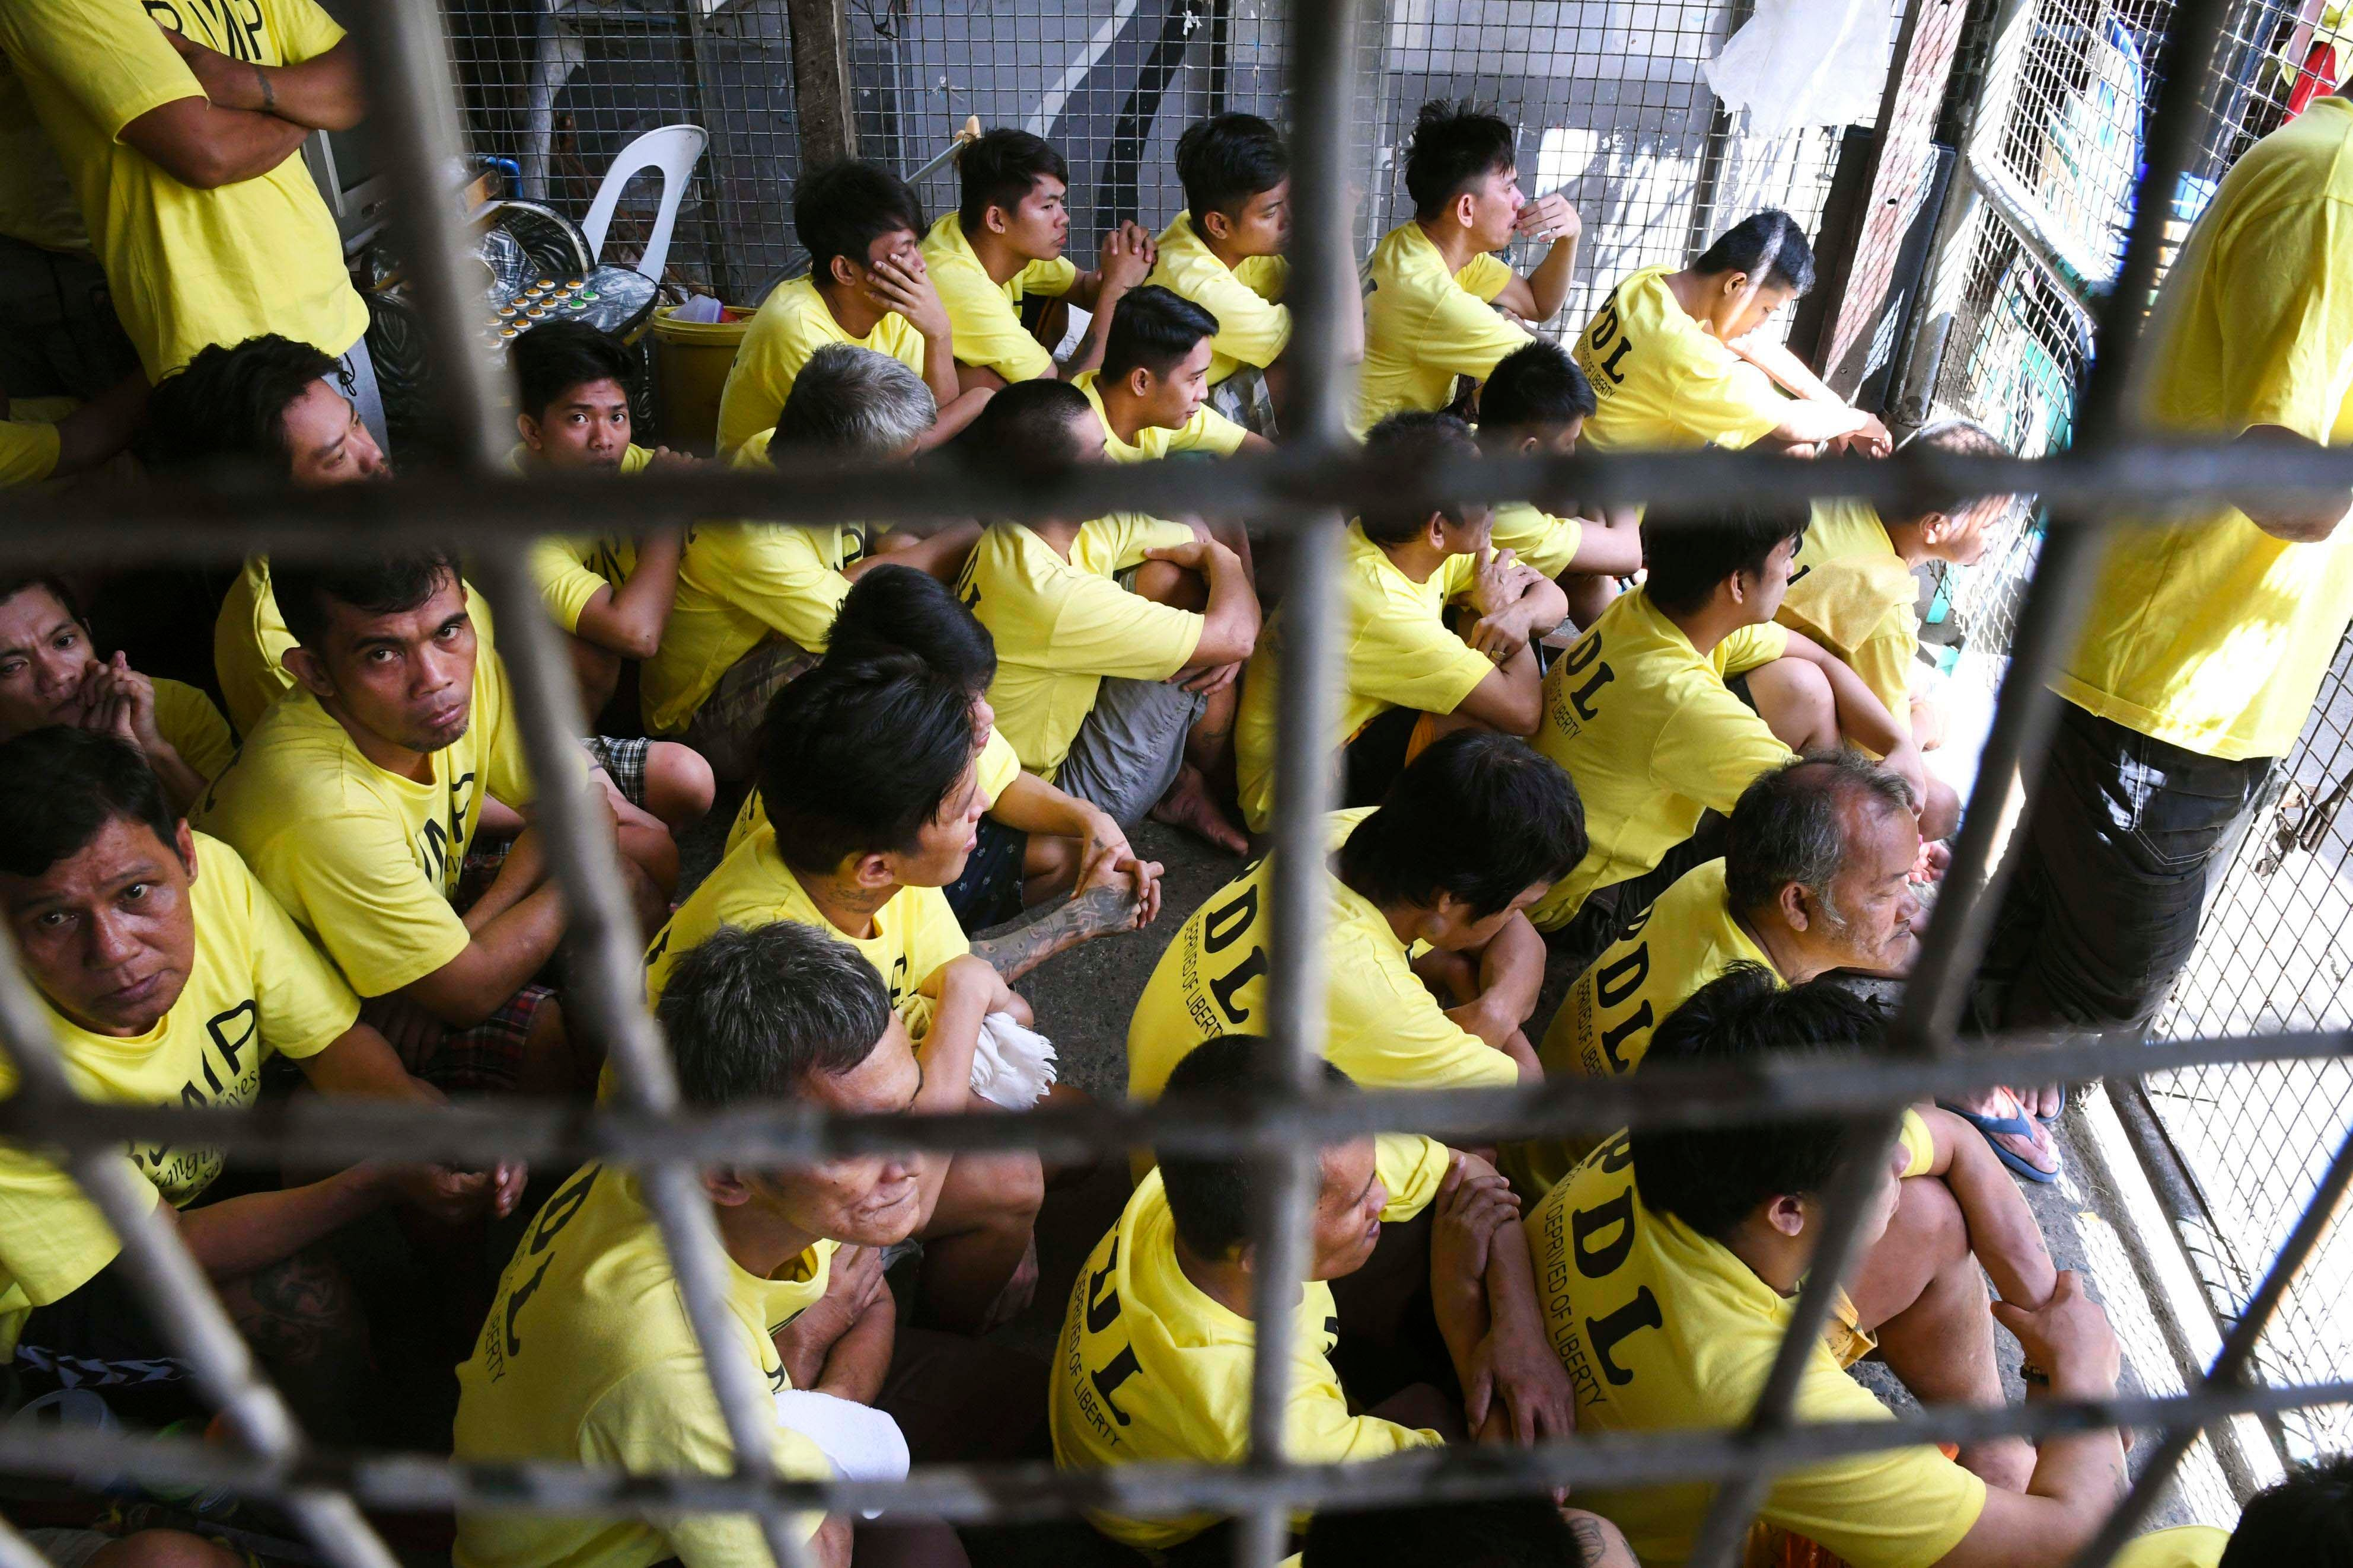 Covid-19 Prisoner Releases Too Few, Too Slow | Human Rights Watch